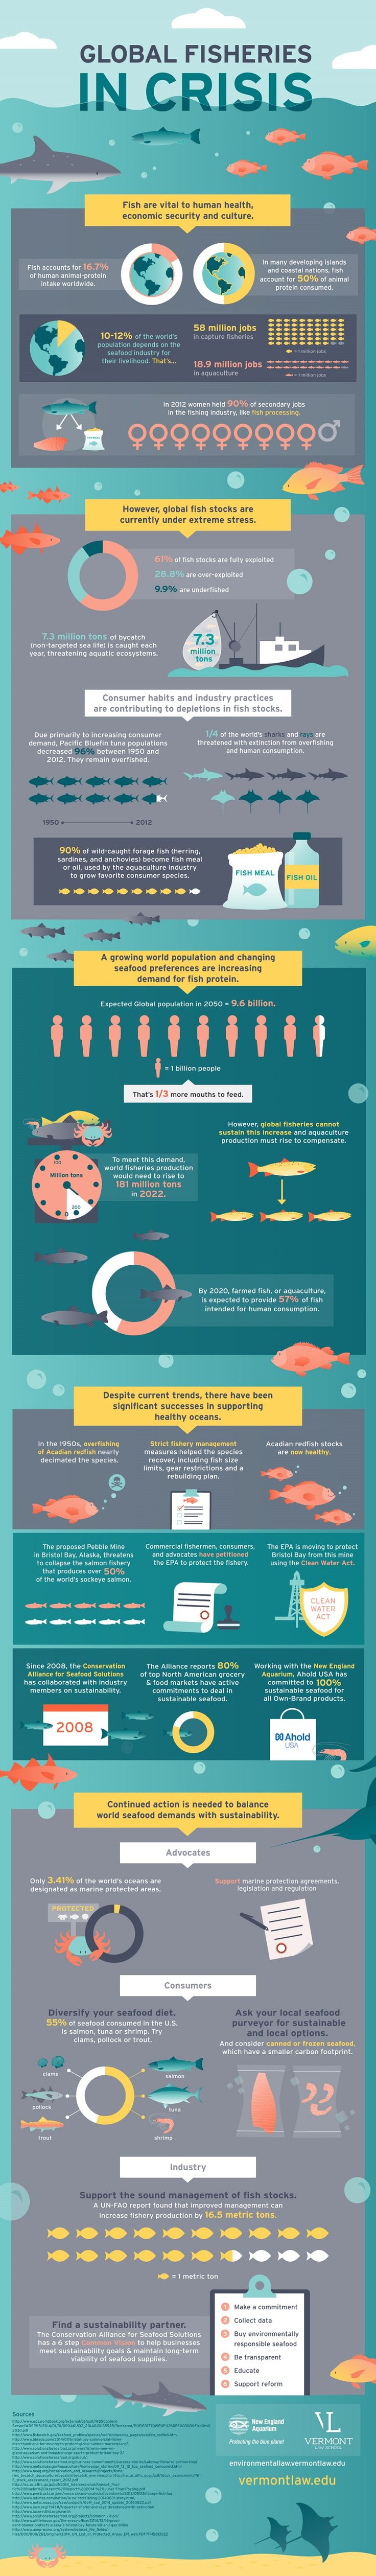 Global Fisheries in Crisis #infographic #Fishing #Environment